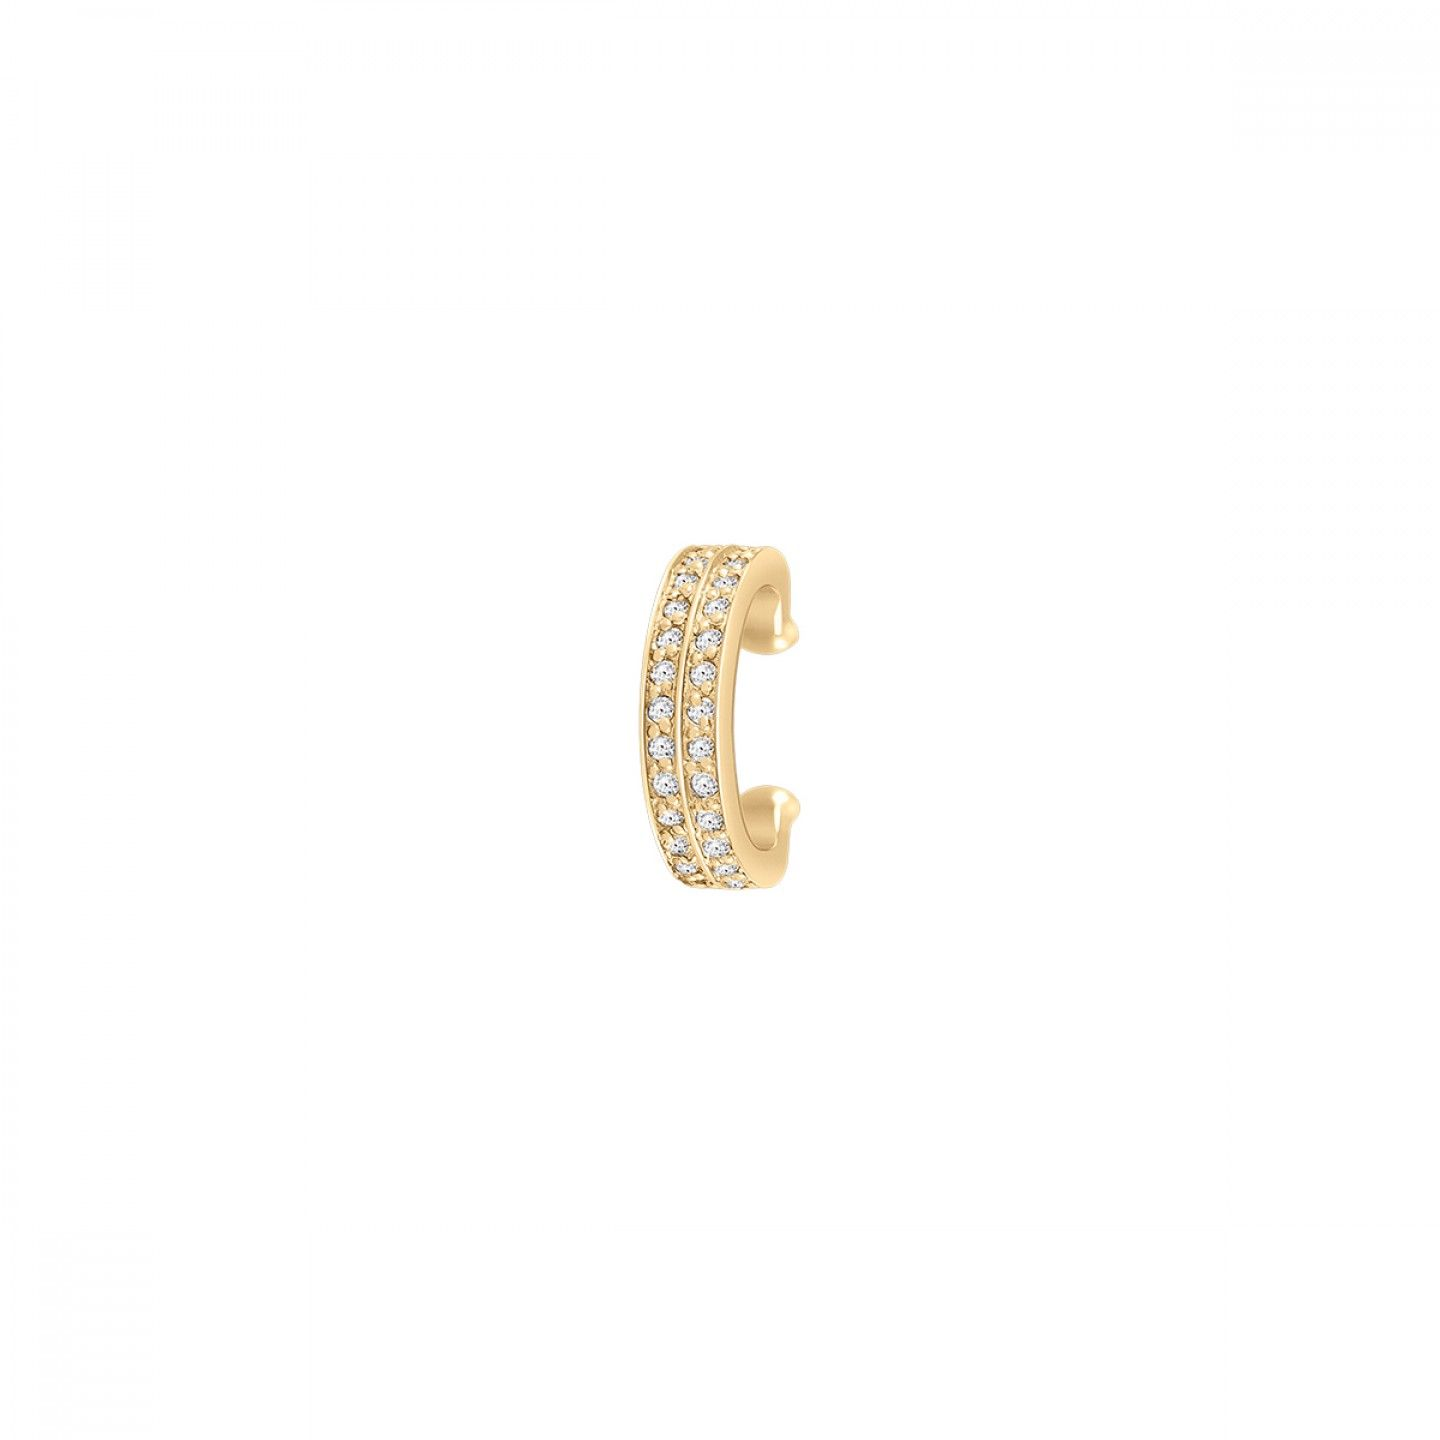 BRINCO UNIKE MIX & MATCH EAR CUFF SHINNY I GOLD